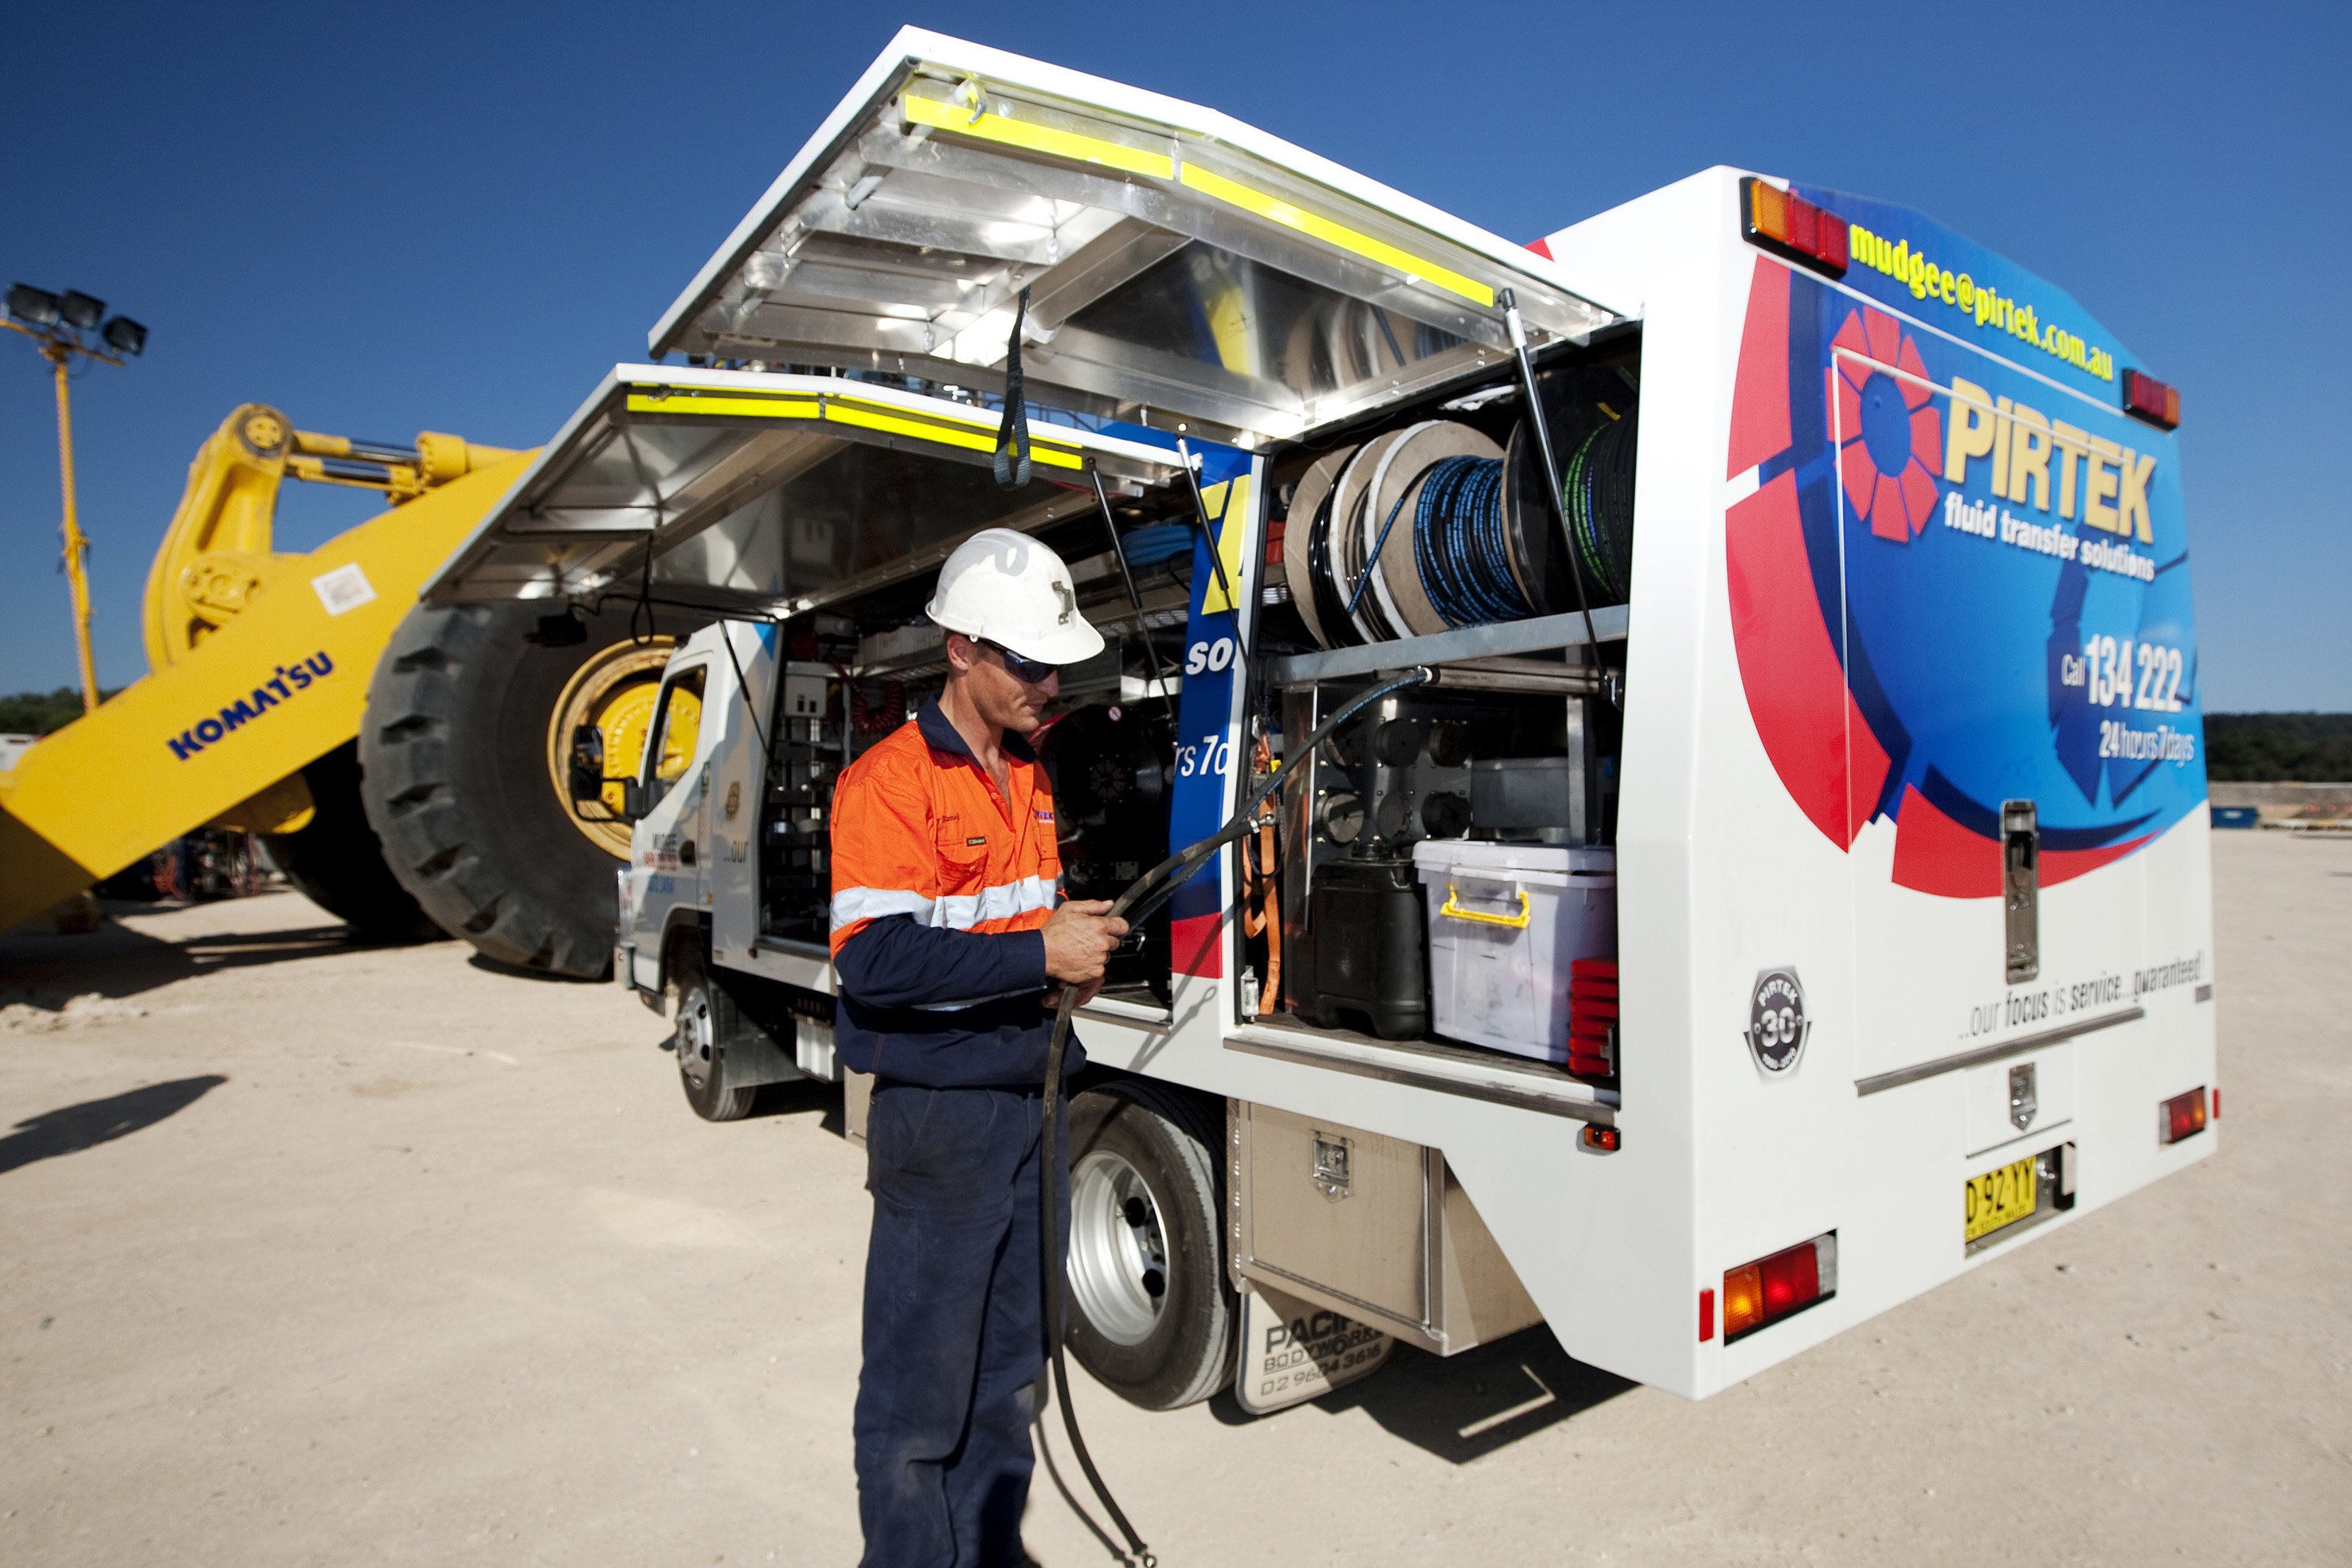 Pirtek Franchise Available - Alice Springs